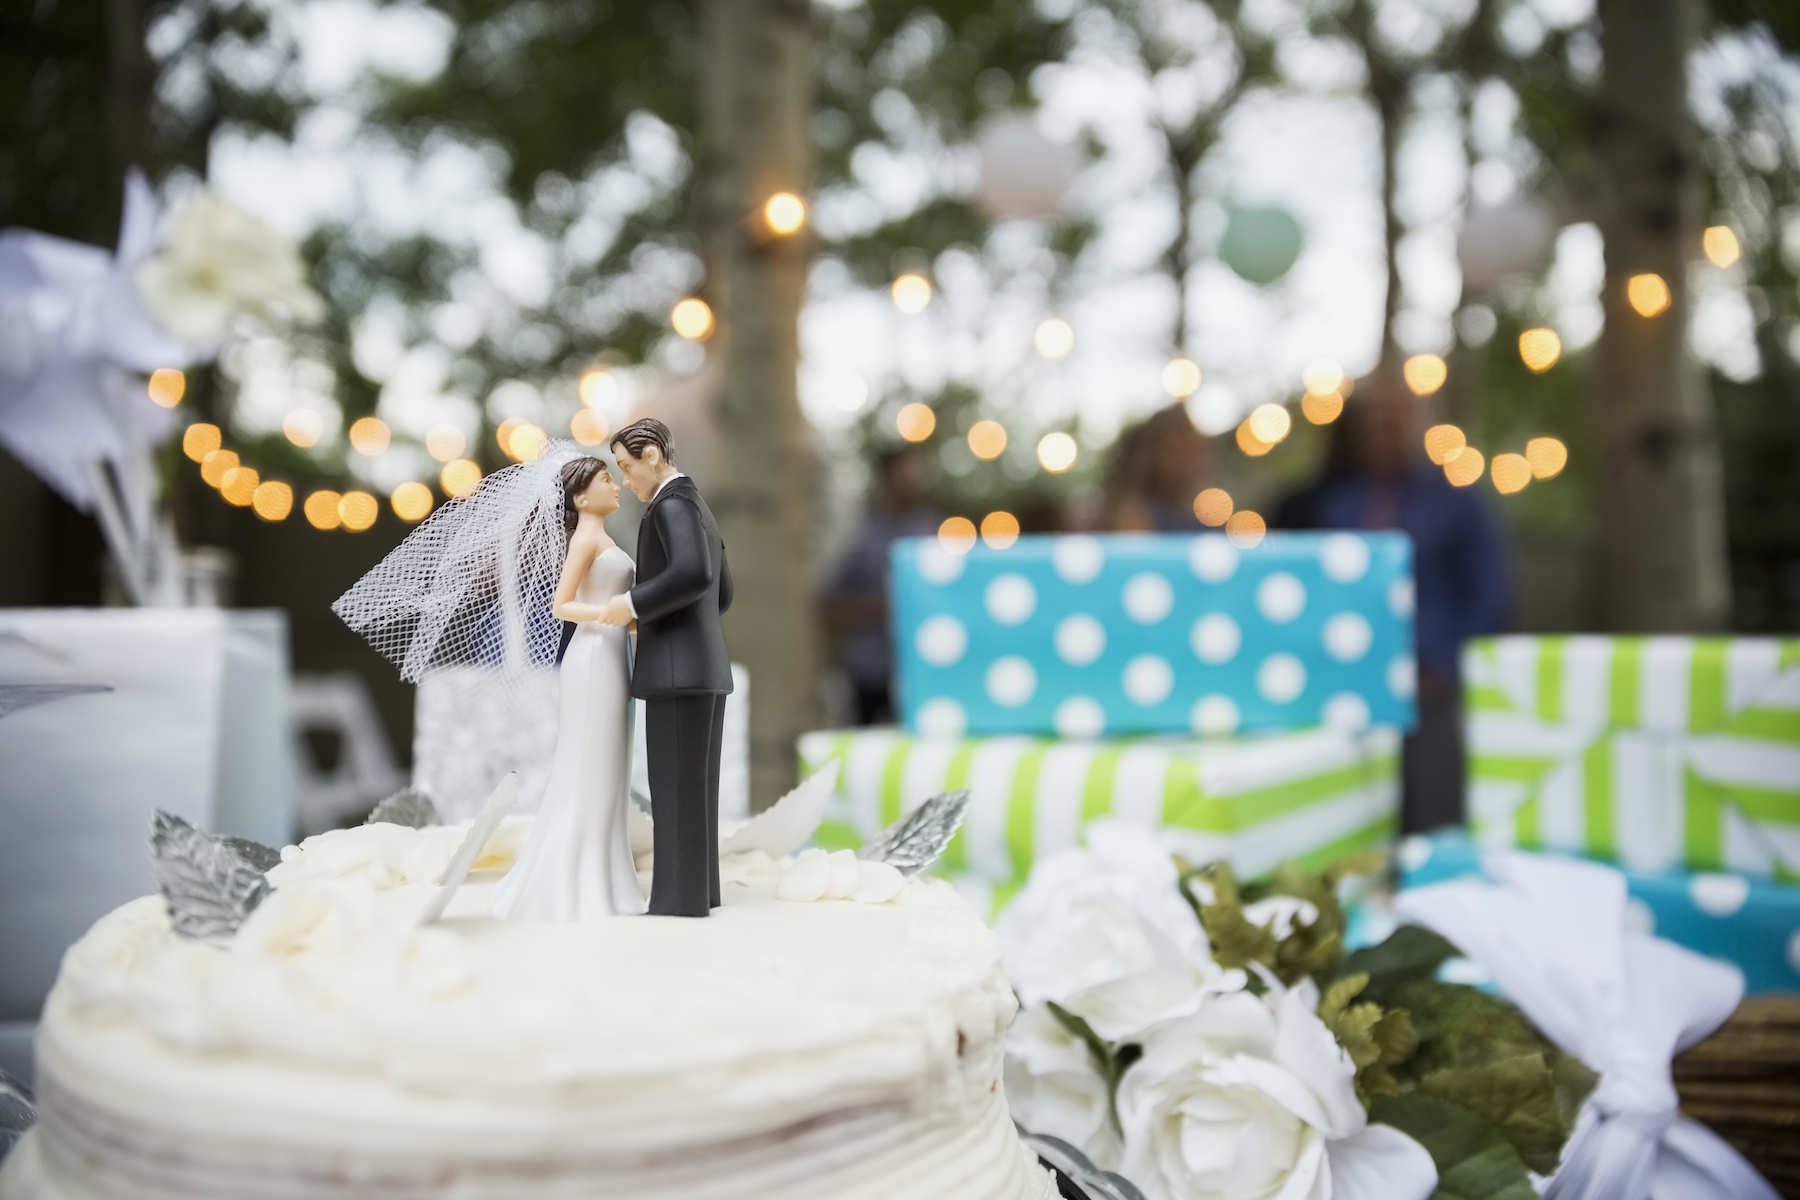 Wedding Cake Topper With Presents